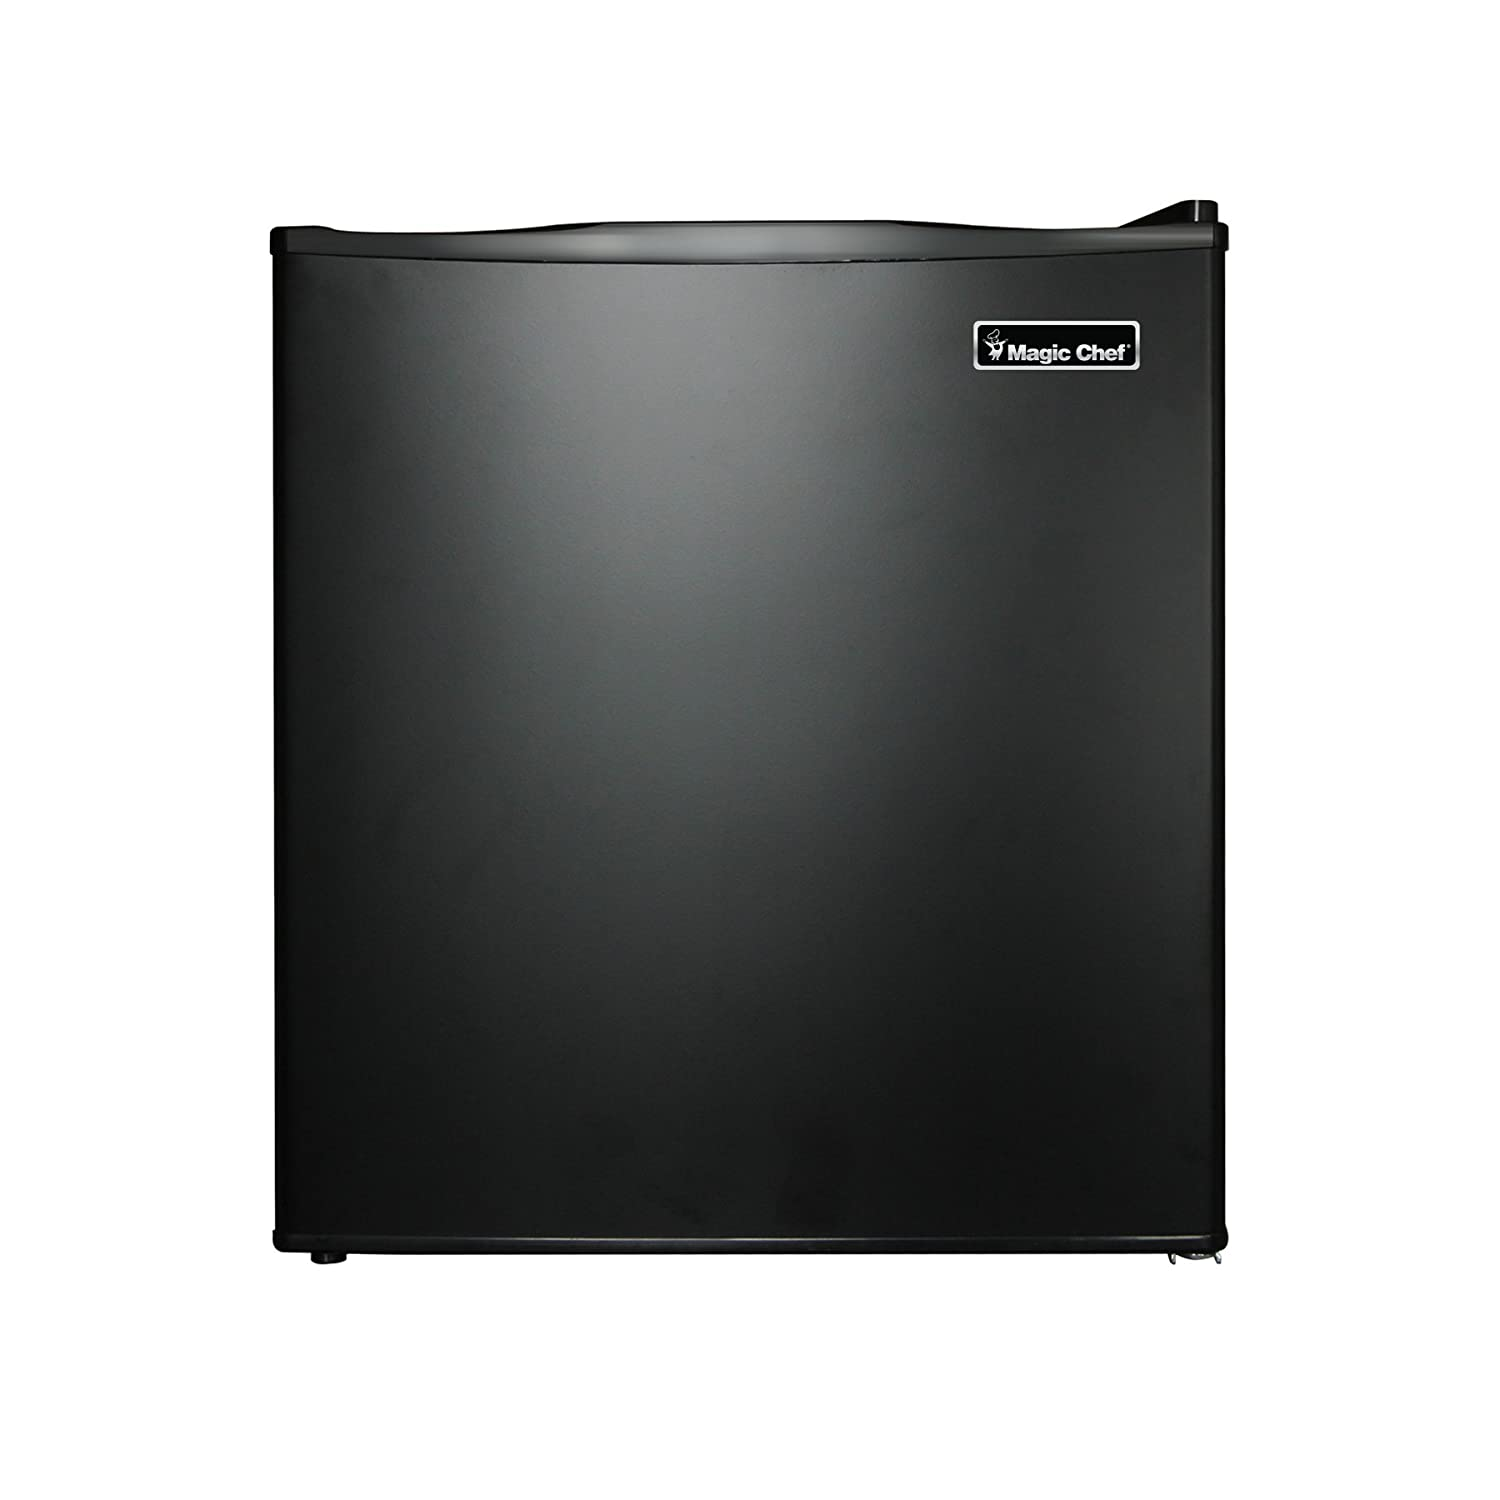 Magic Chef MCAR170B2 1.7 cu.ft. All Refrigerator, Black